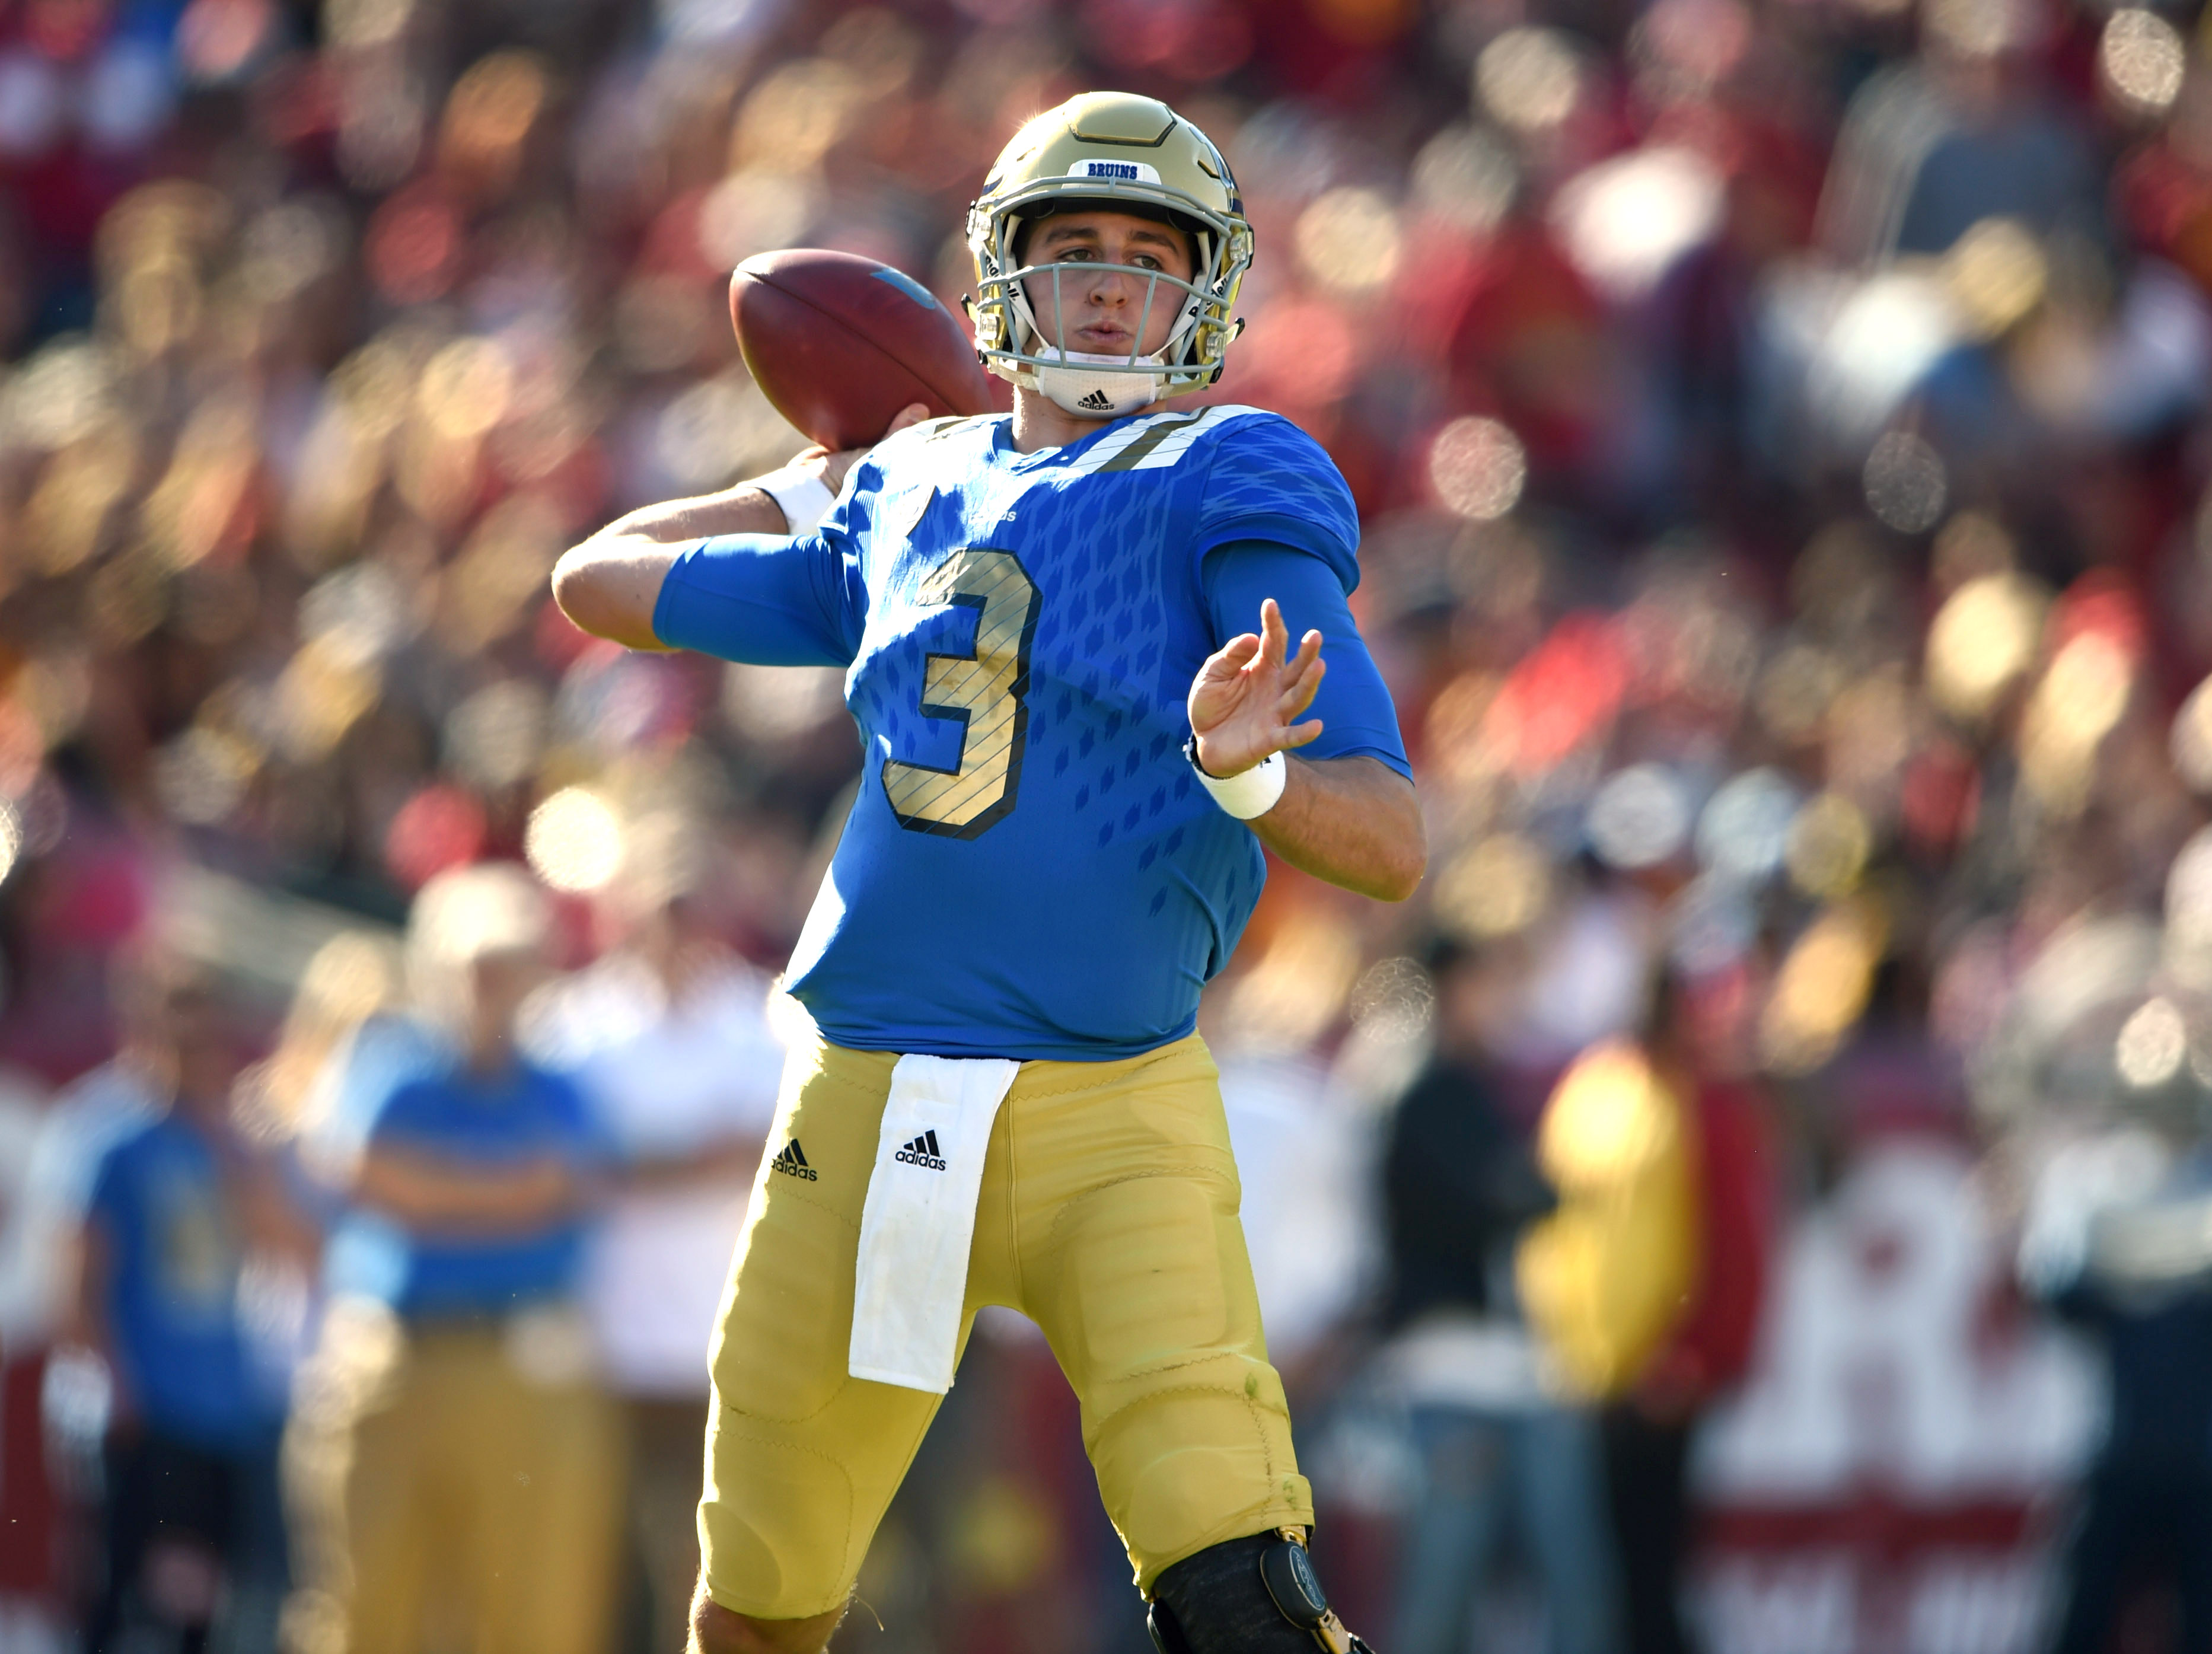 Josh Rosen and the Bruins will face the Nebraska Cornhuskers in the Foster Farms Bowl.